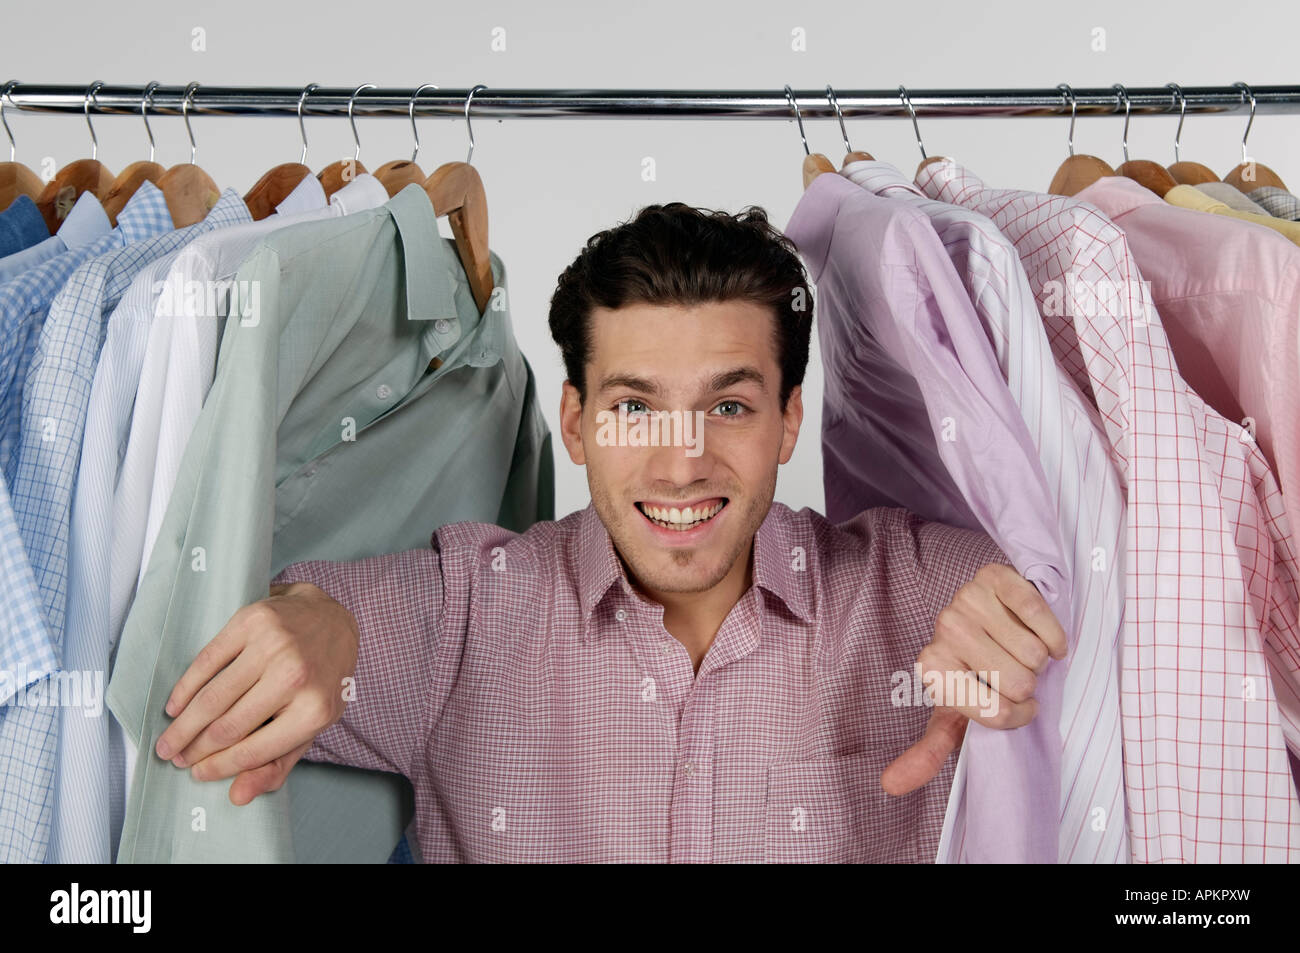 Young man with clothing rack - Stock Image